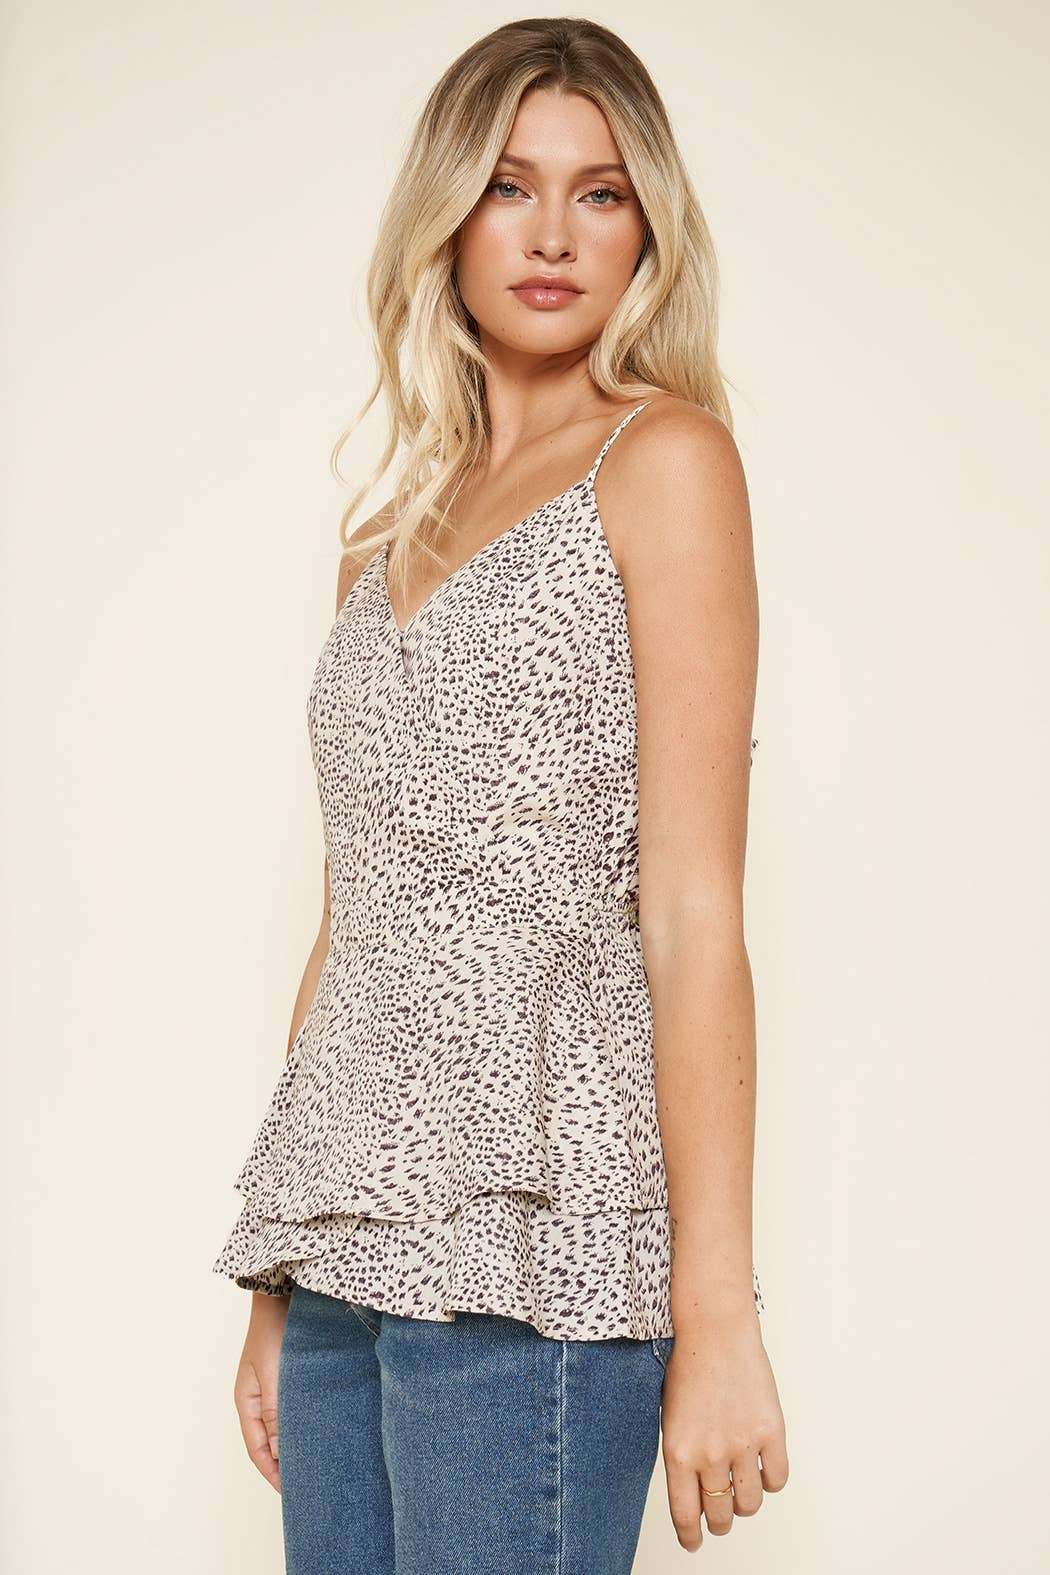 Sugarlips Carnaby Leopard Cami Top - Front Full Image